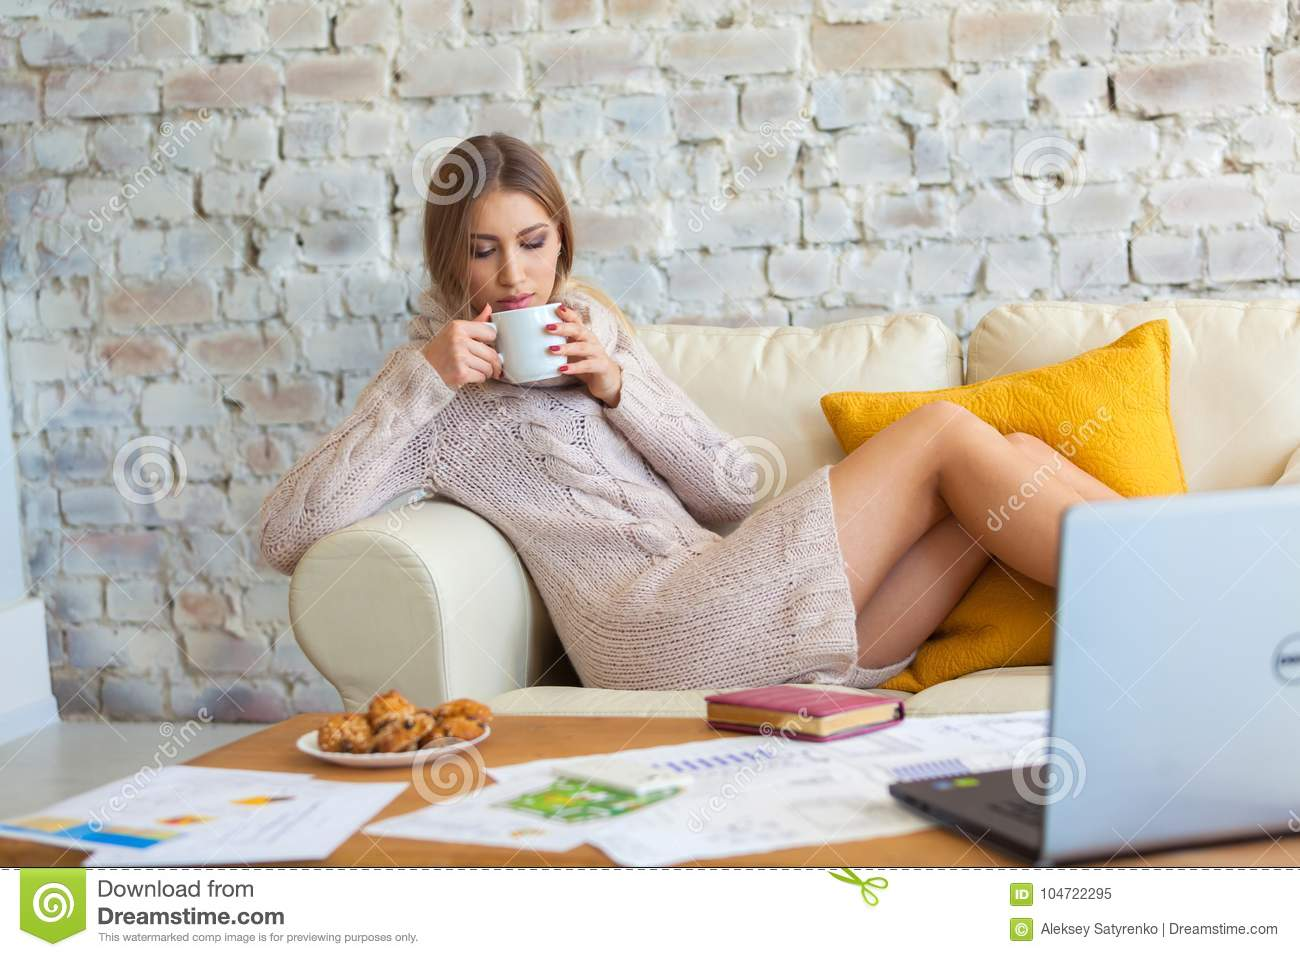 Young beautiful woman is sitting on a sofa on a white brick wall background with a cup of coffee. Laptop, documents